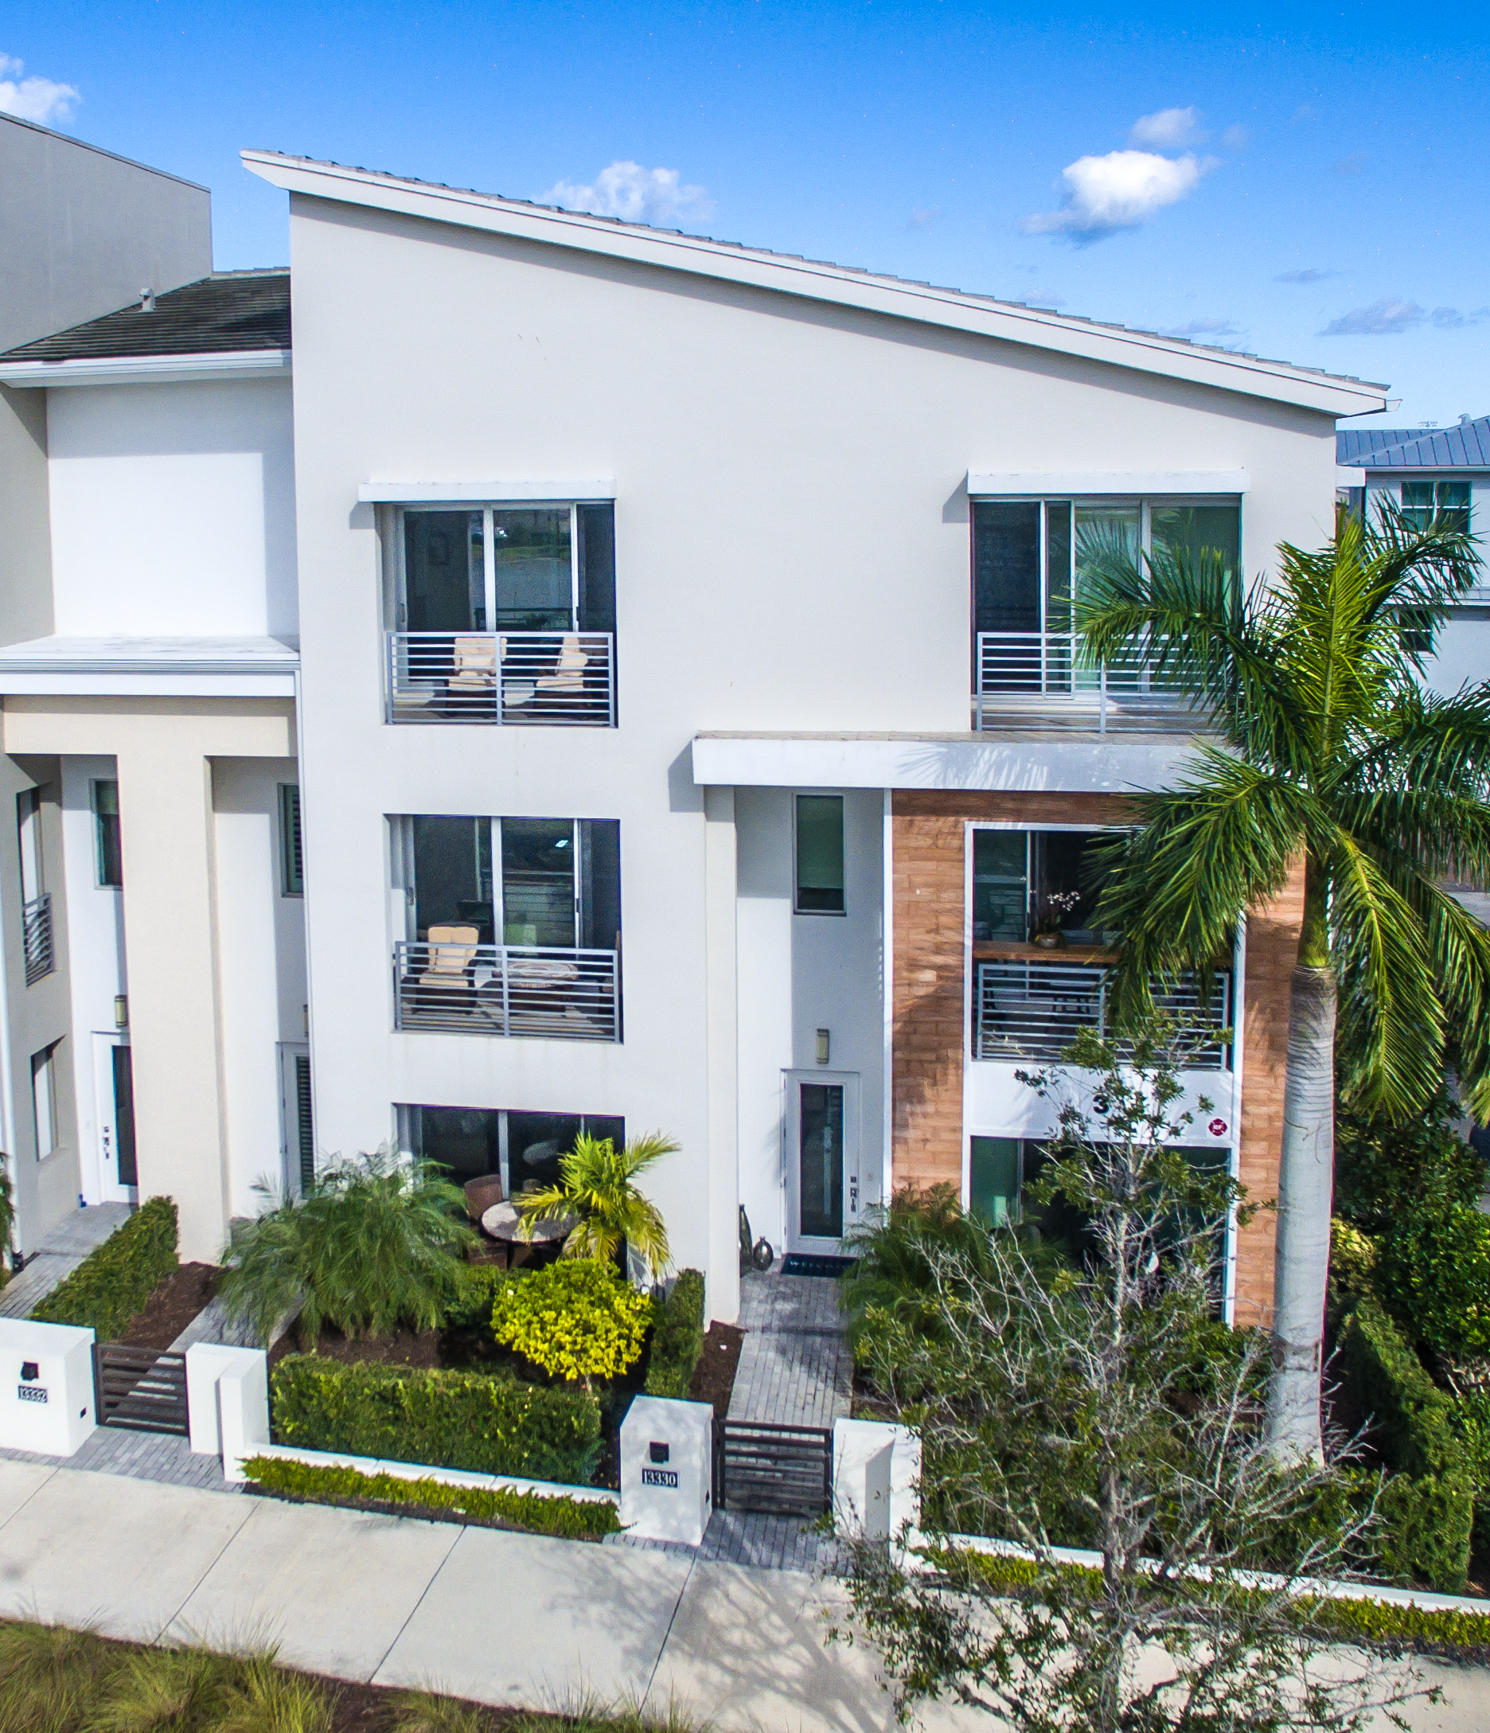 New Home for sale at 13332 Alton Road in Palm Beach Gardens